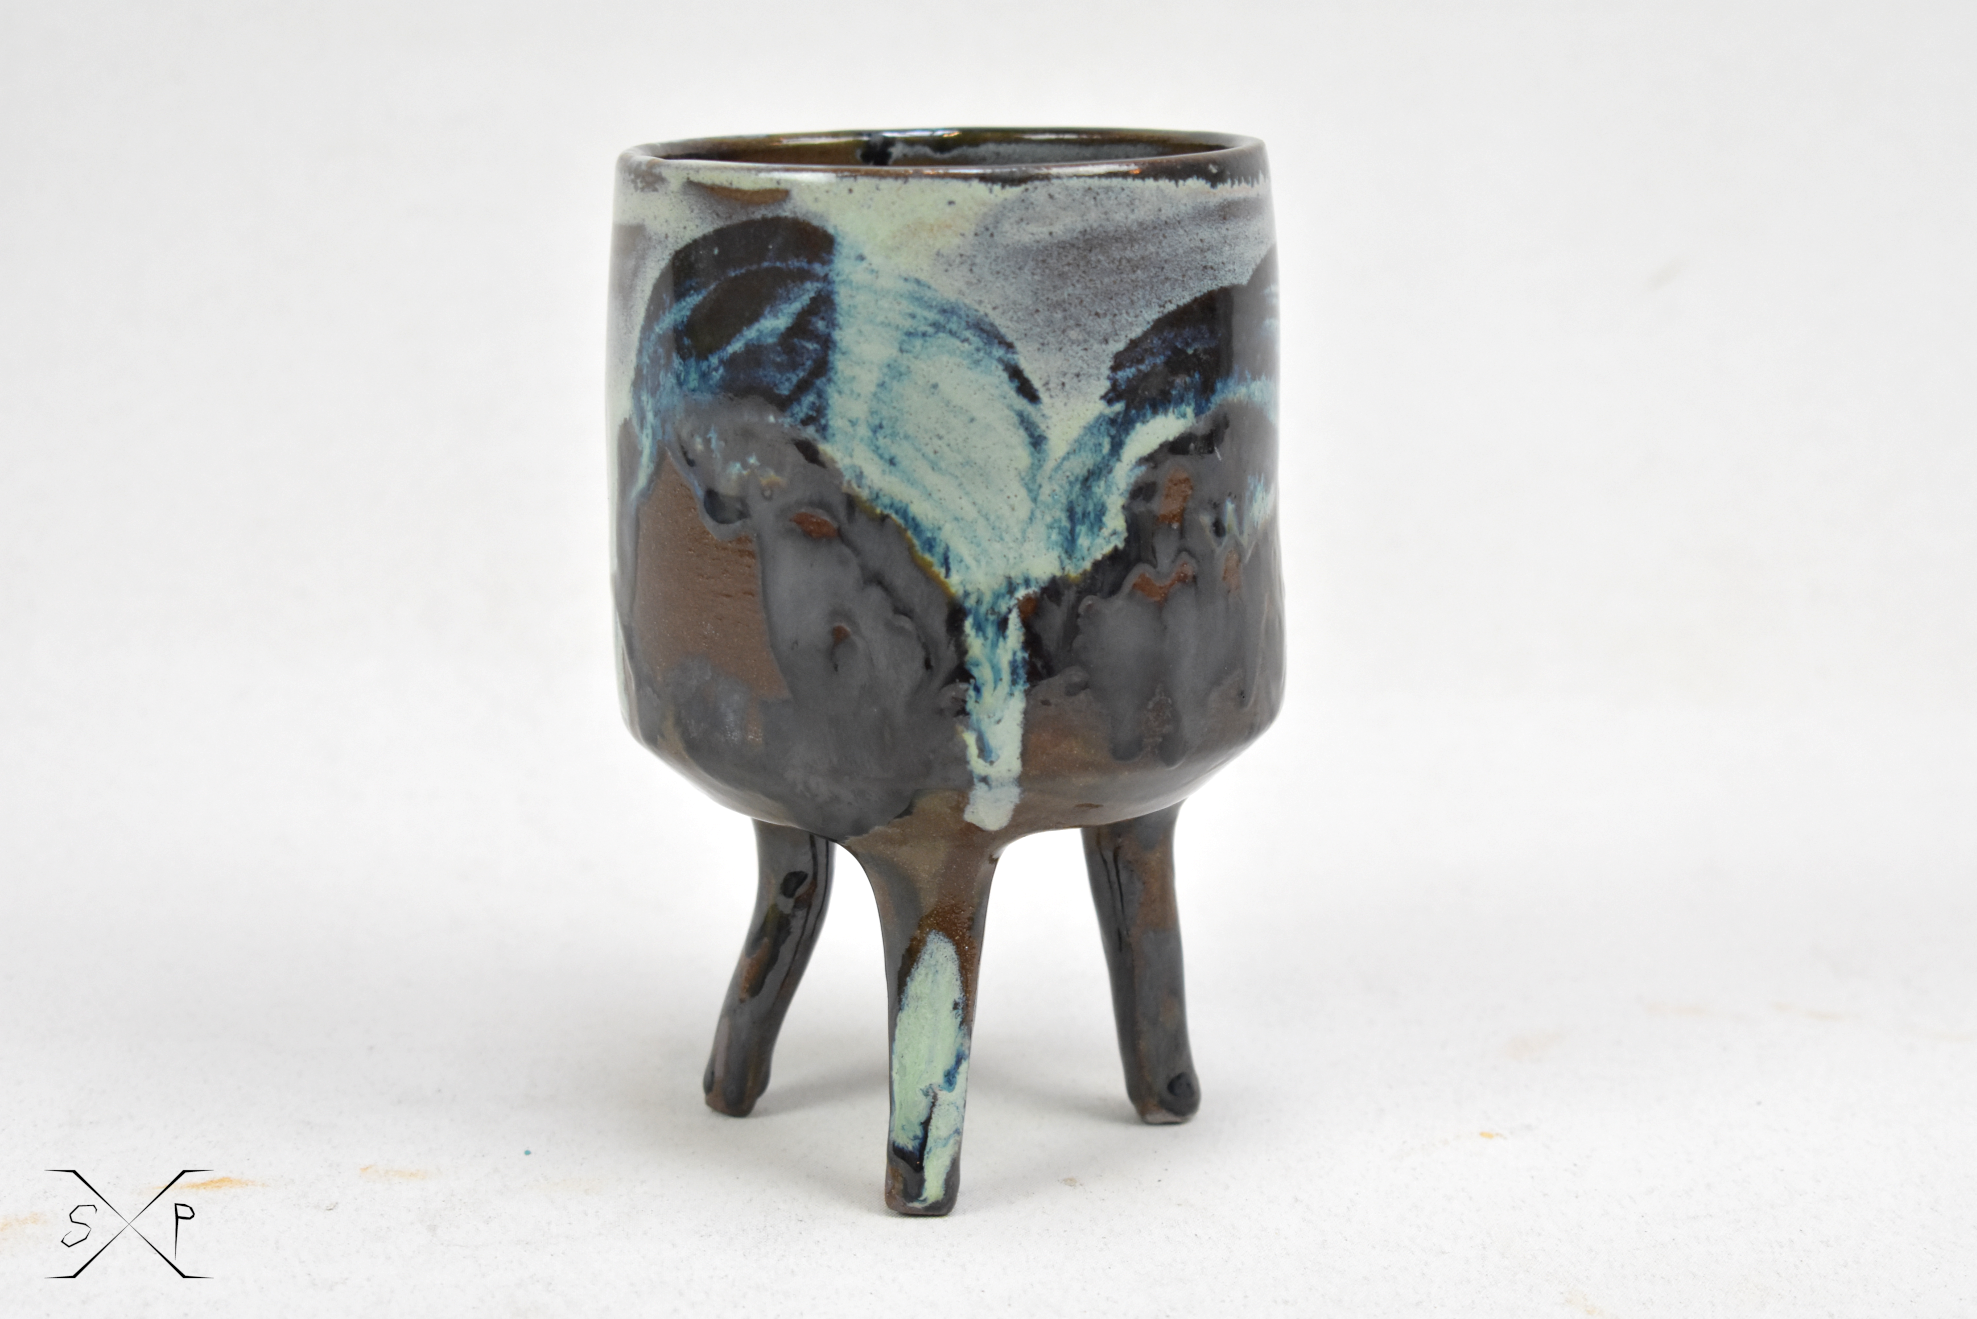 Crawling Planter!  Crawling from the shadows and ready to inhabit new organisms into its body, this planter will give you a new insight to agriculture!   #spacexpottery #contemporaryceramics #studiopottery #handmade #potterydesign